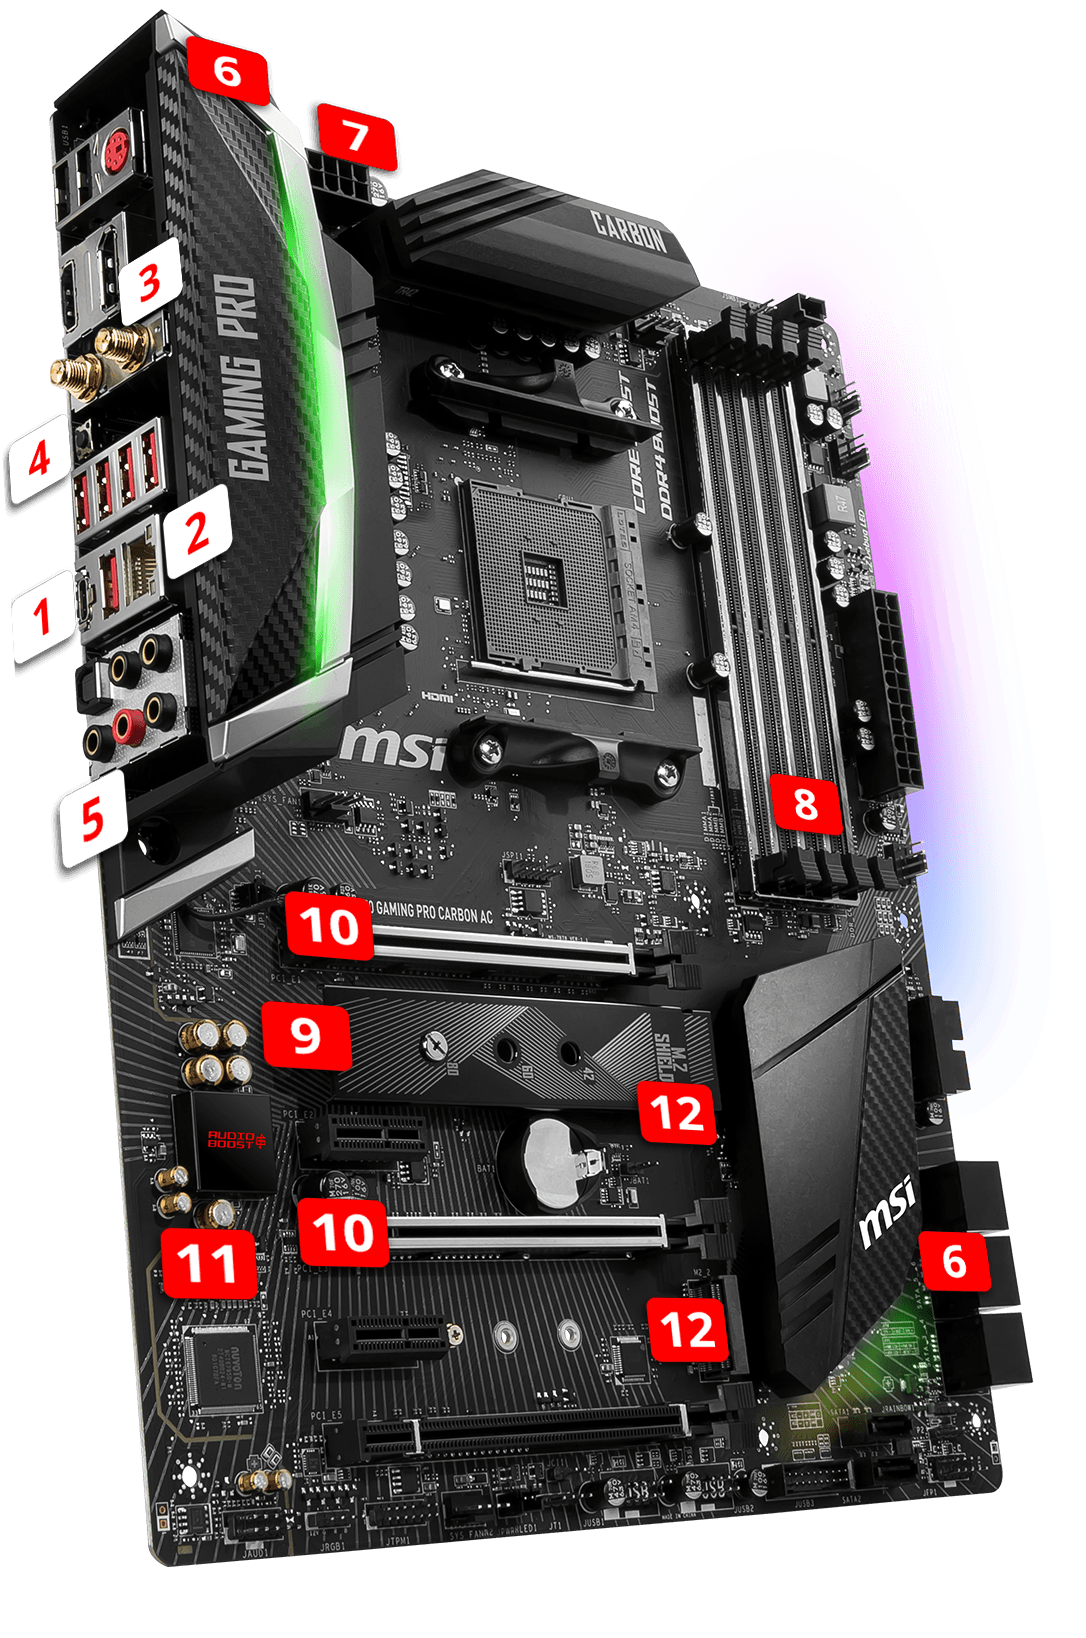 MSI X470 GAMING PRO CARBON AC overview